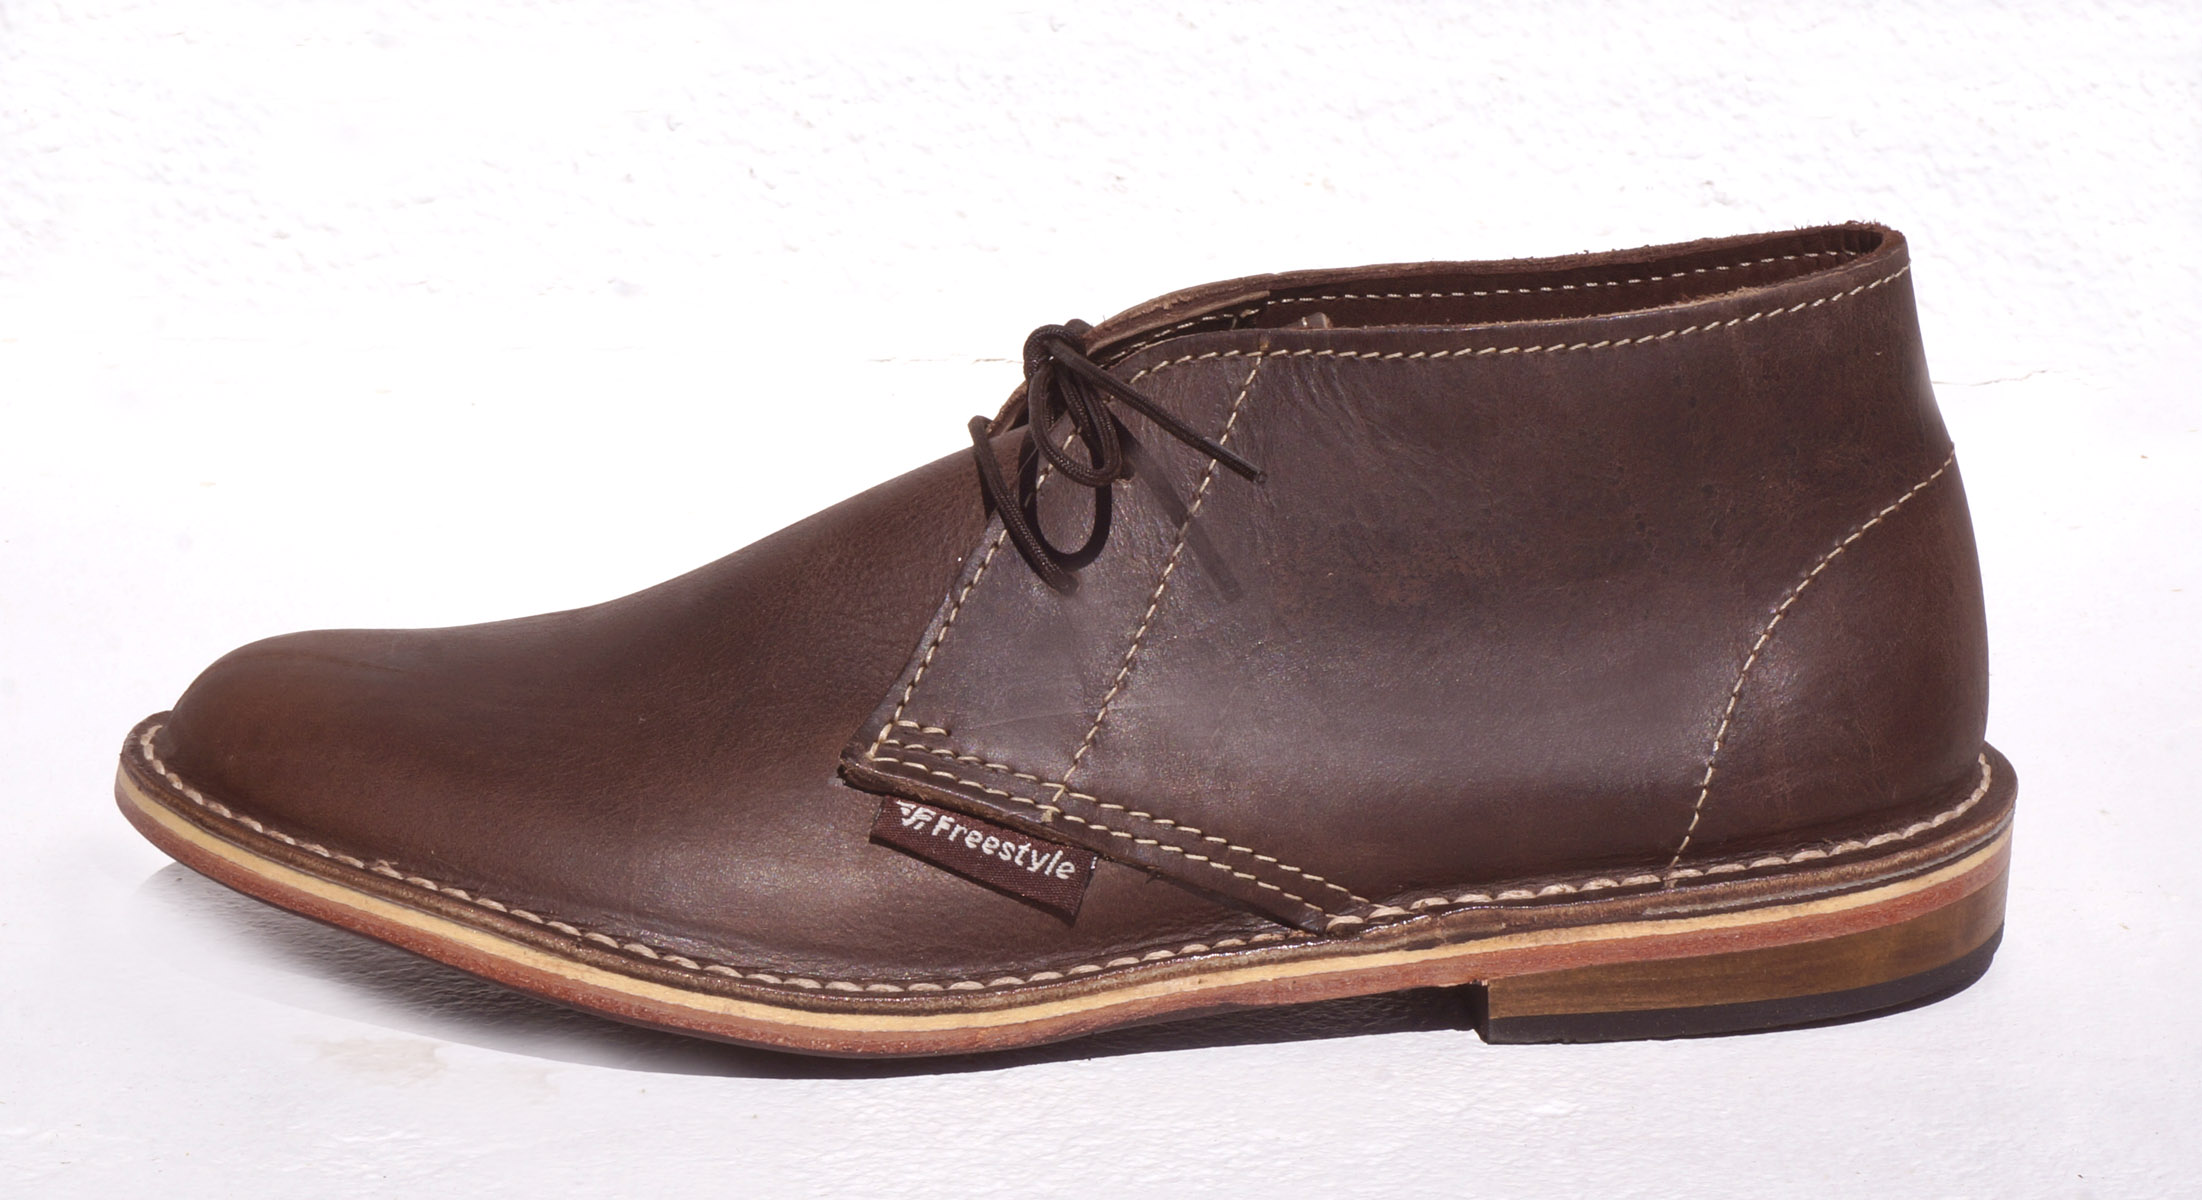 South African Handmade Shoes